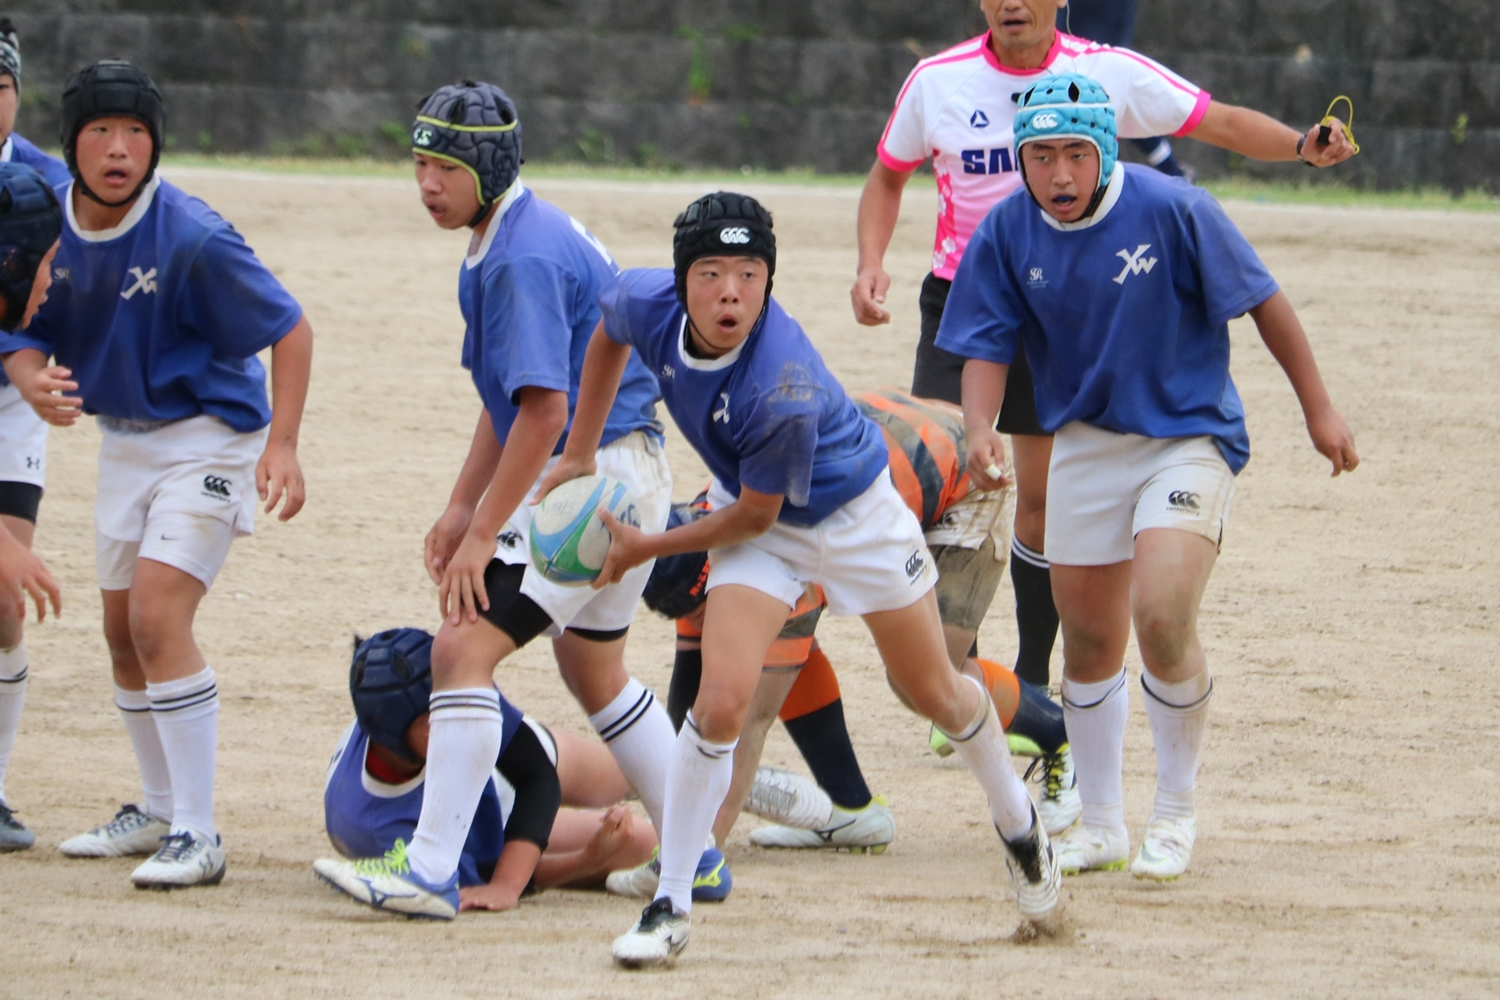 youngwave_2018043